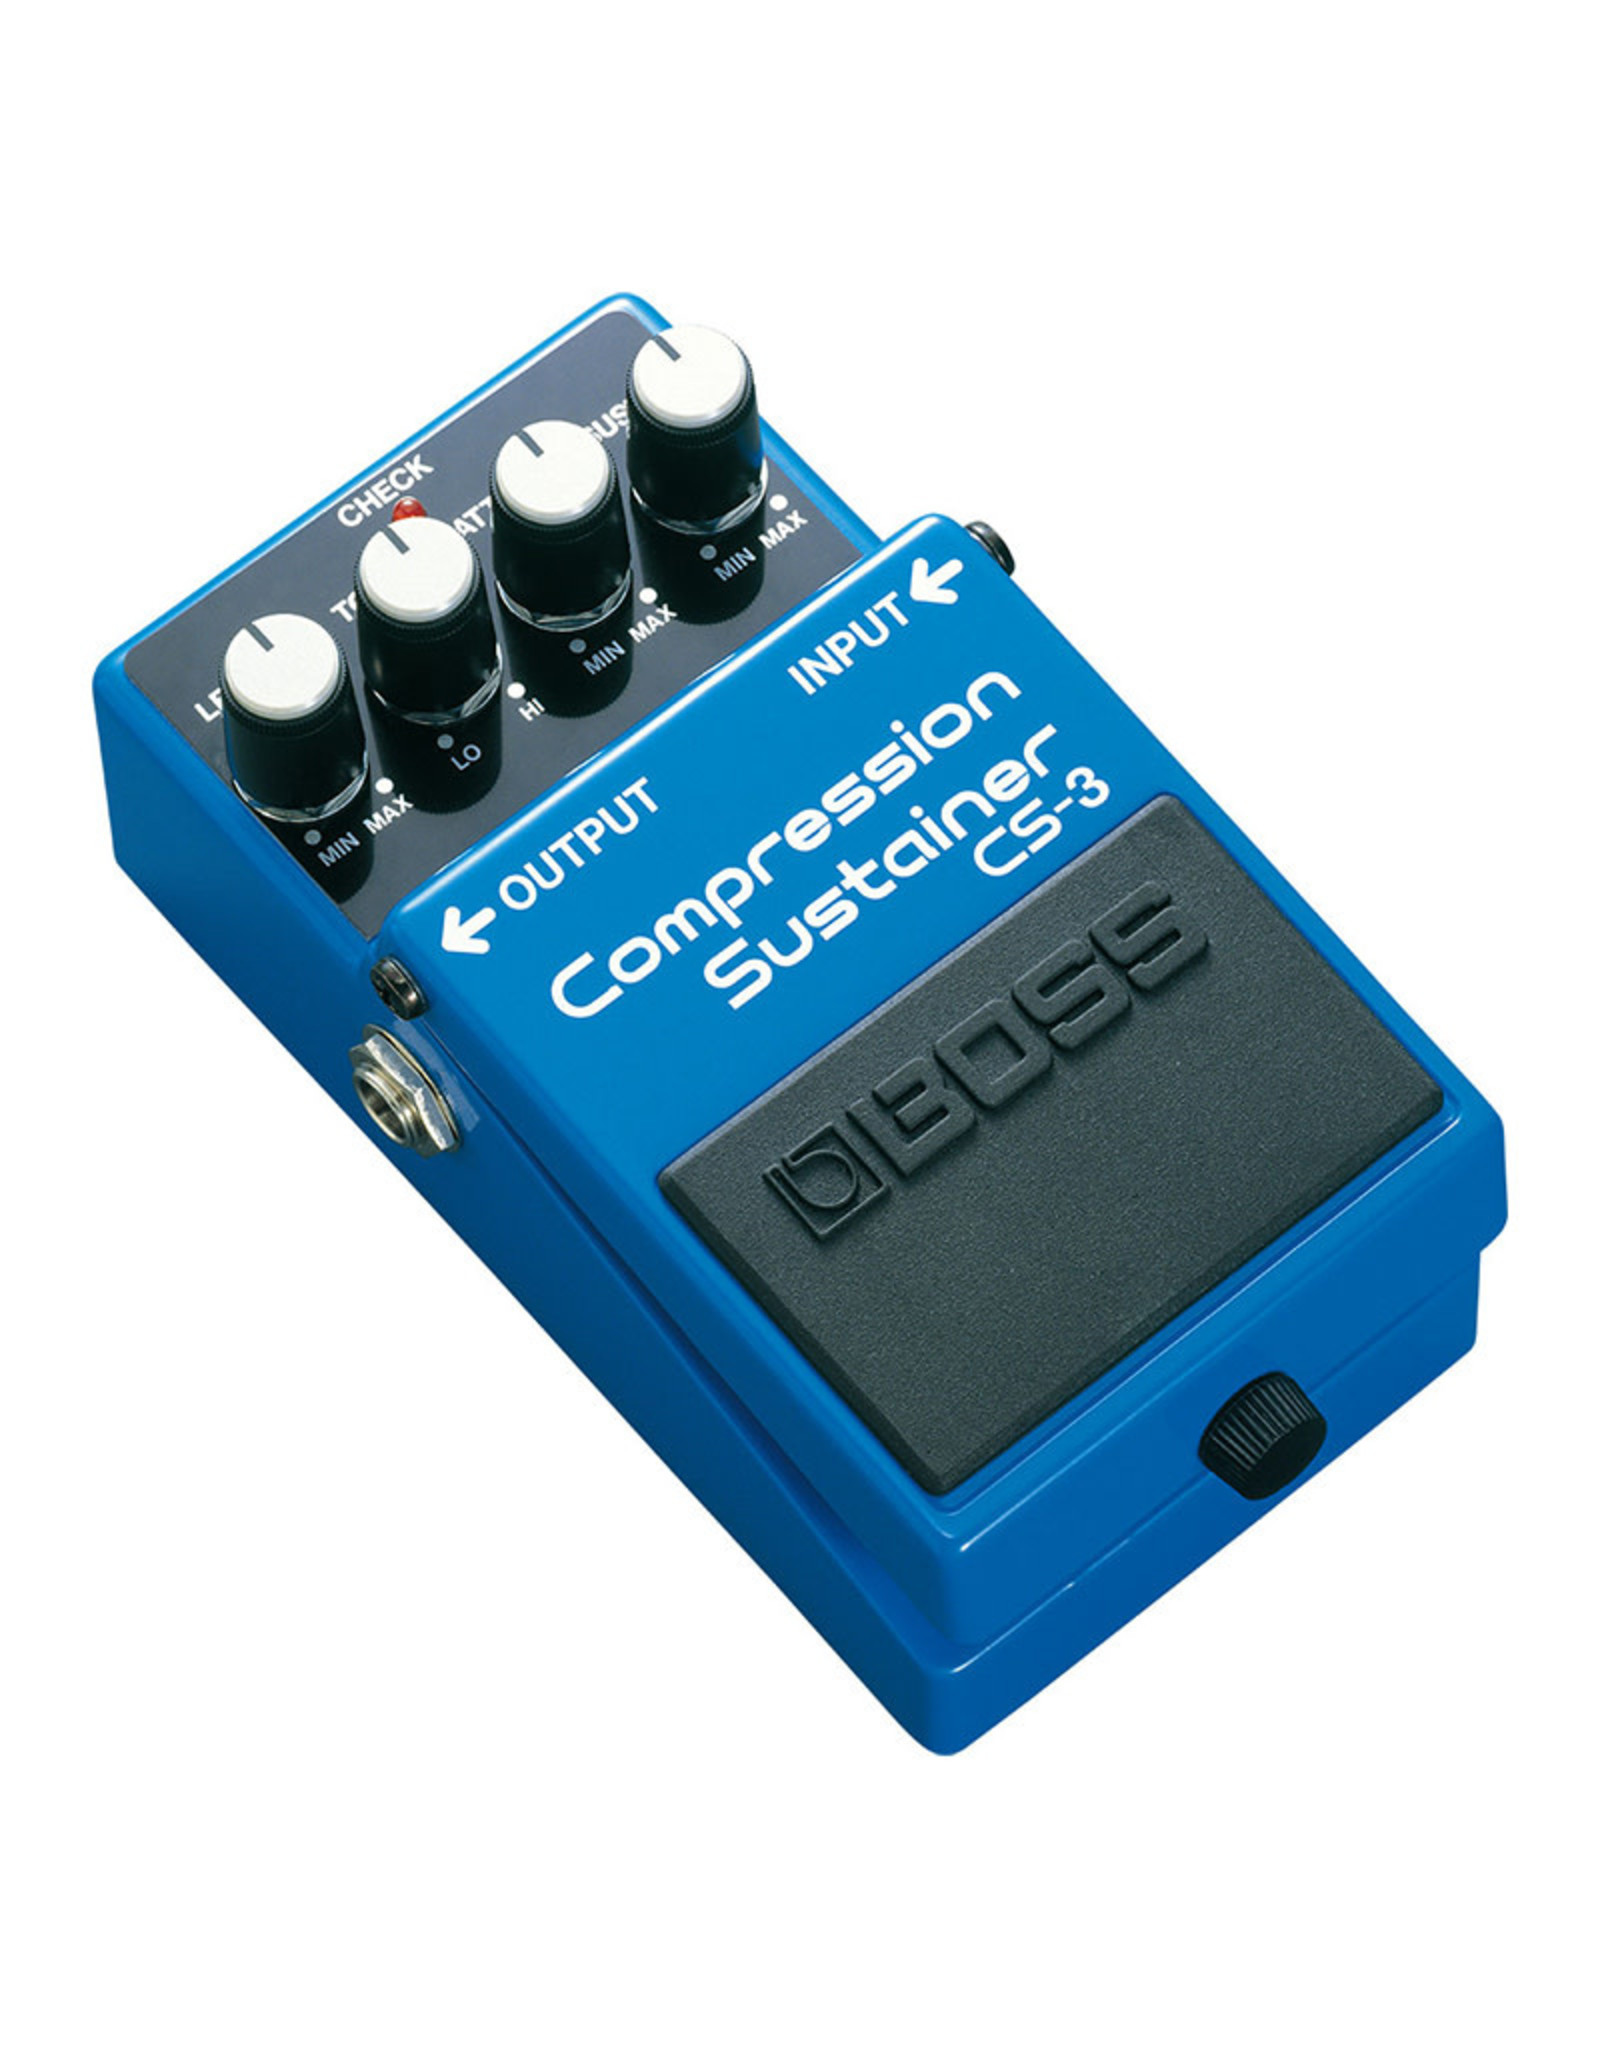 Boss Compression Sustainer Pedal